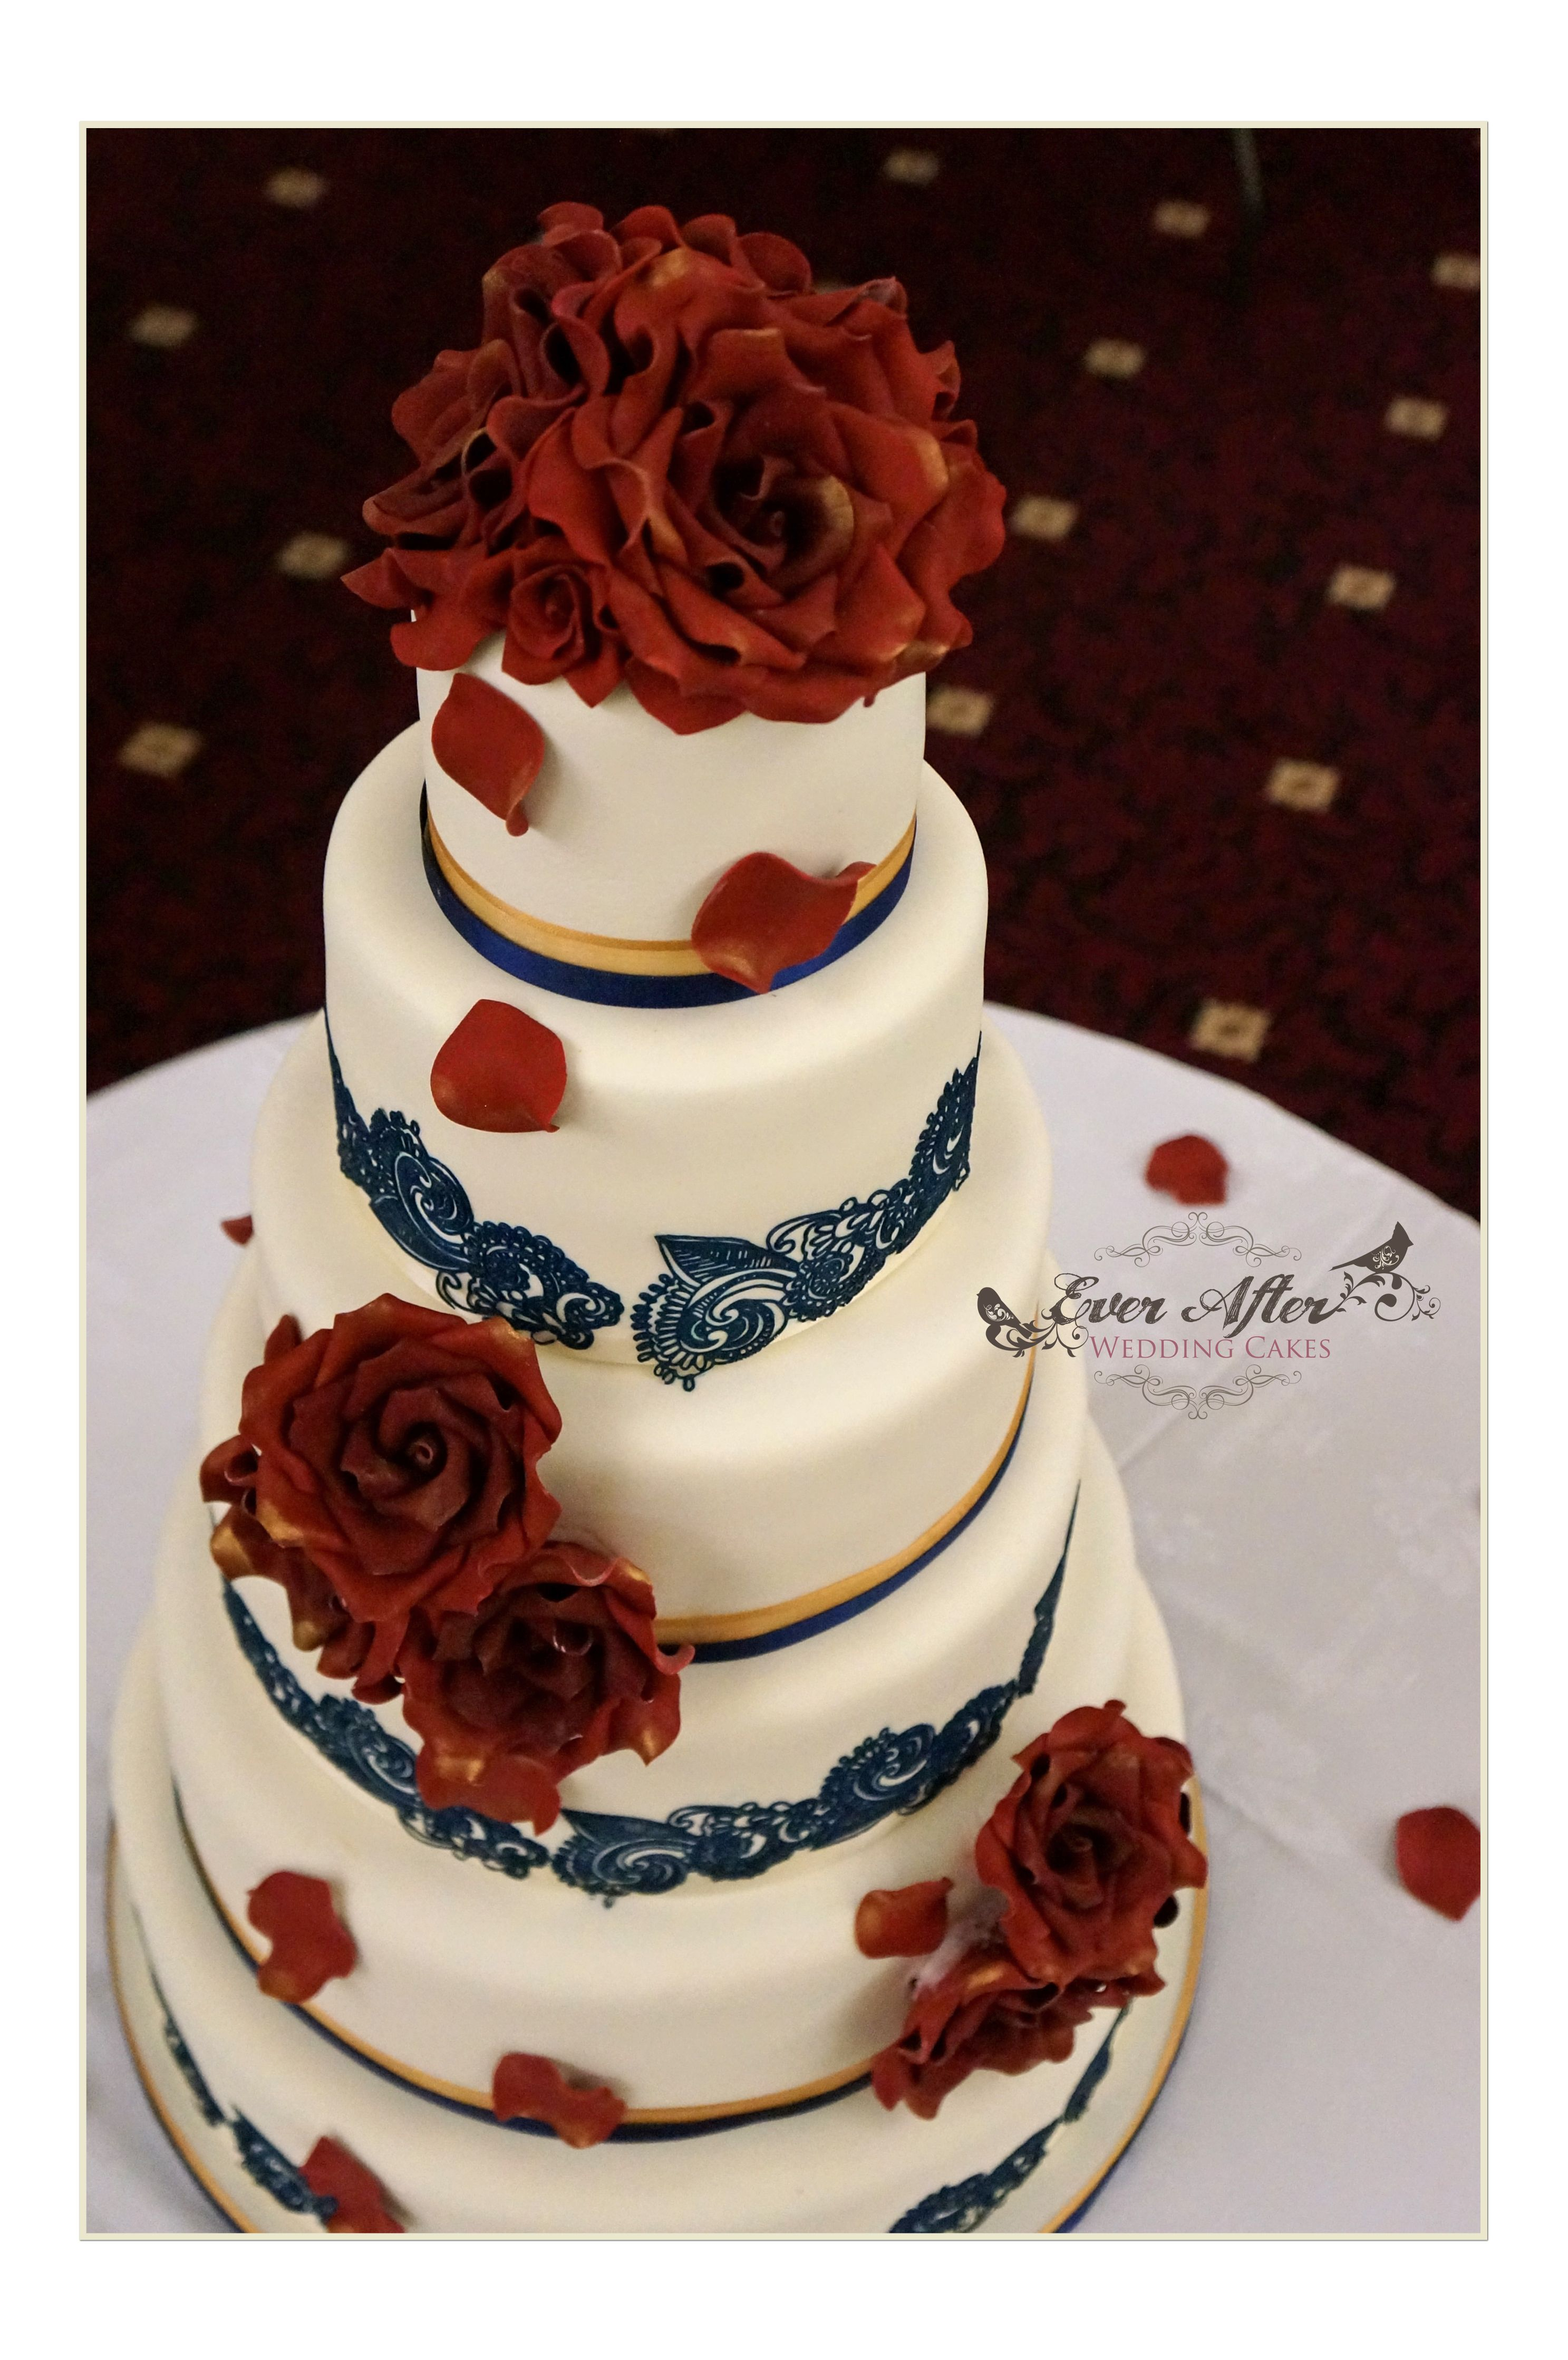 6 Tier Wedding Cake In Navy Blue Maroon And A Touch Of Gold All